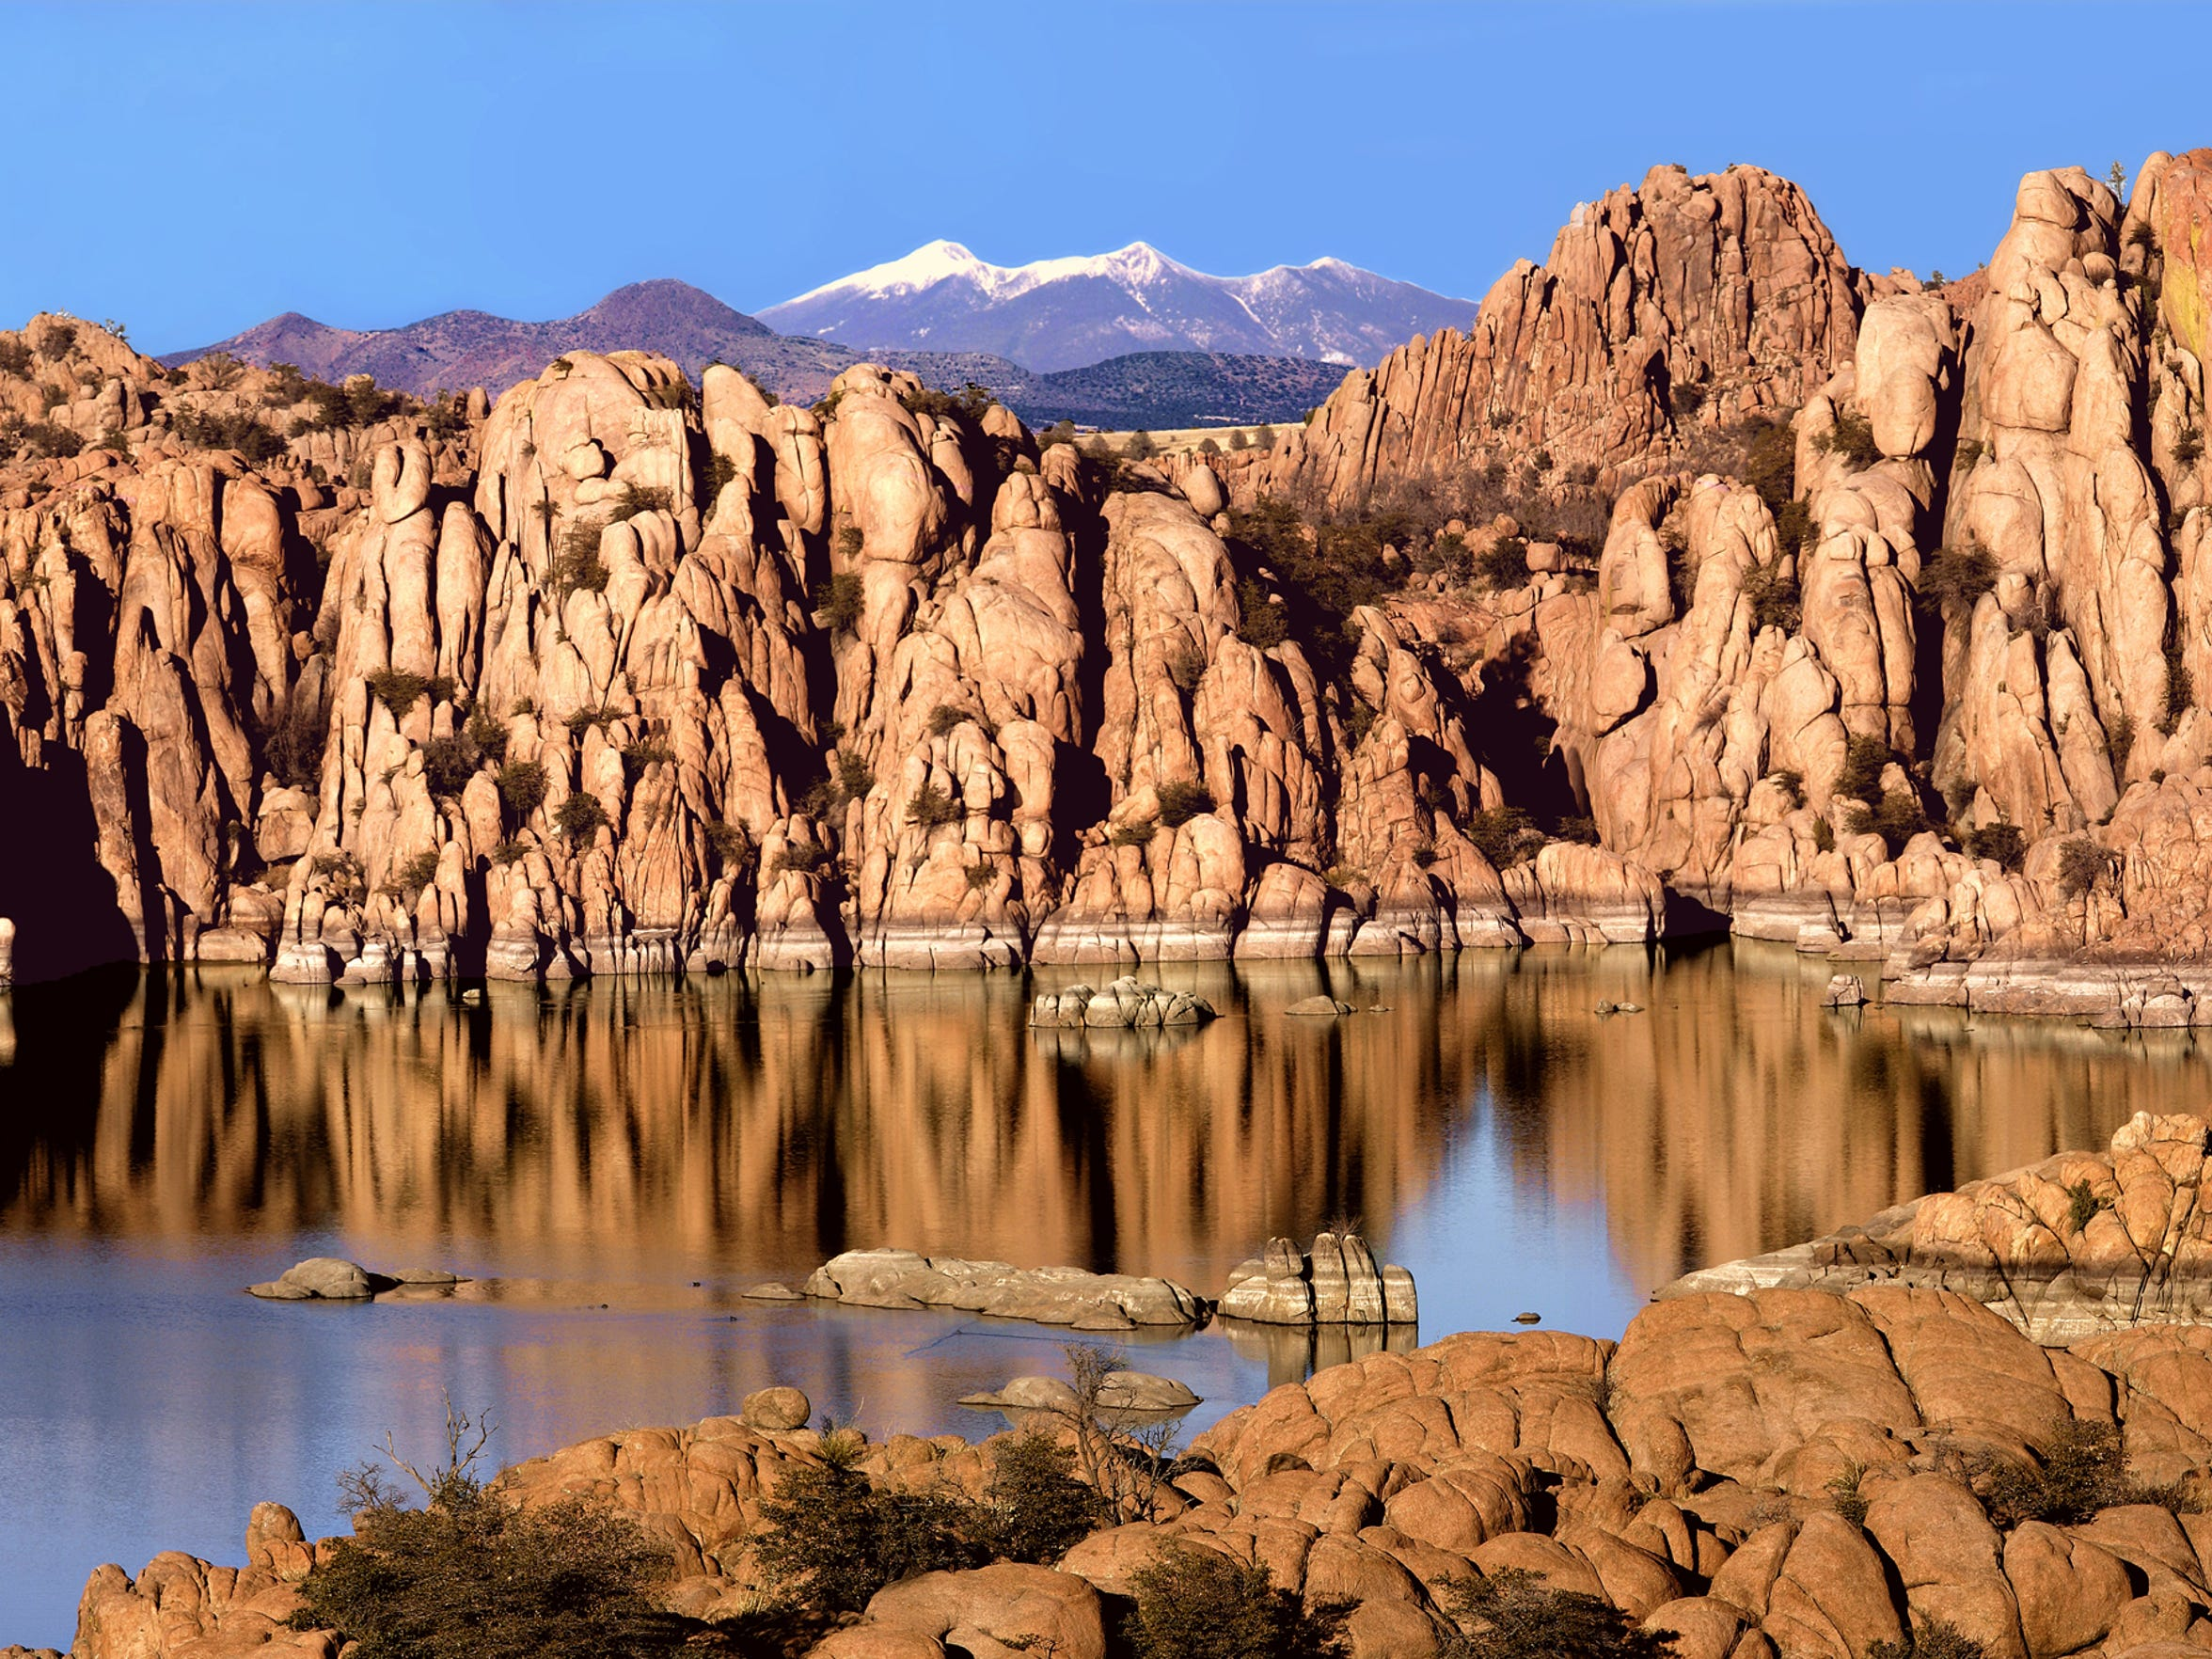 The intricate rocks of Watson Lake near Prescott frame the San Francisco Peaks in the distance. Watson Lake is one of several lakes in the Prescott area.